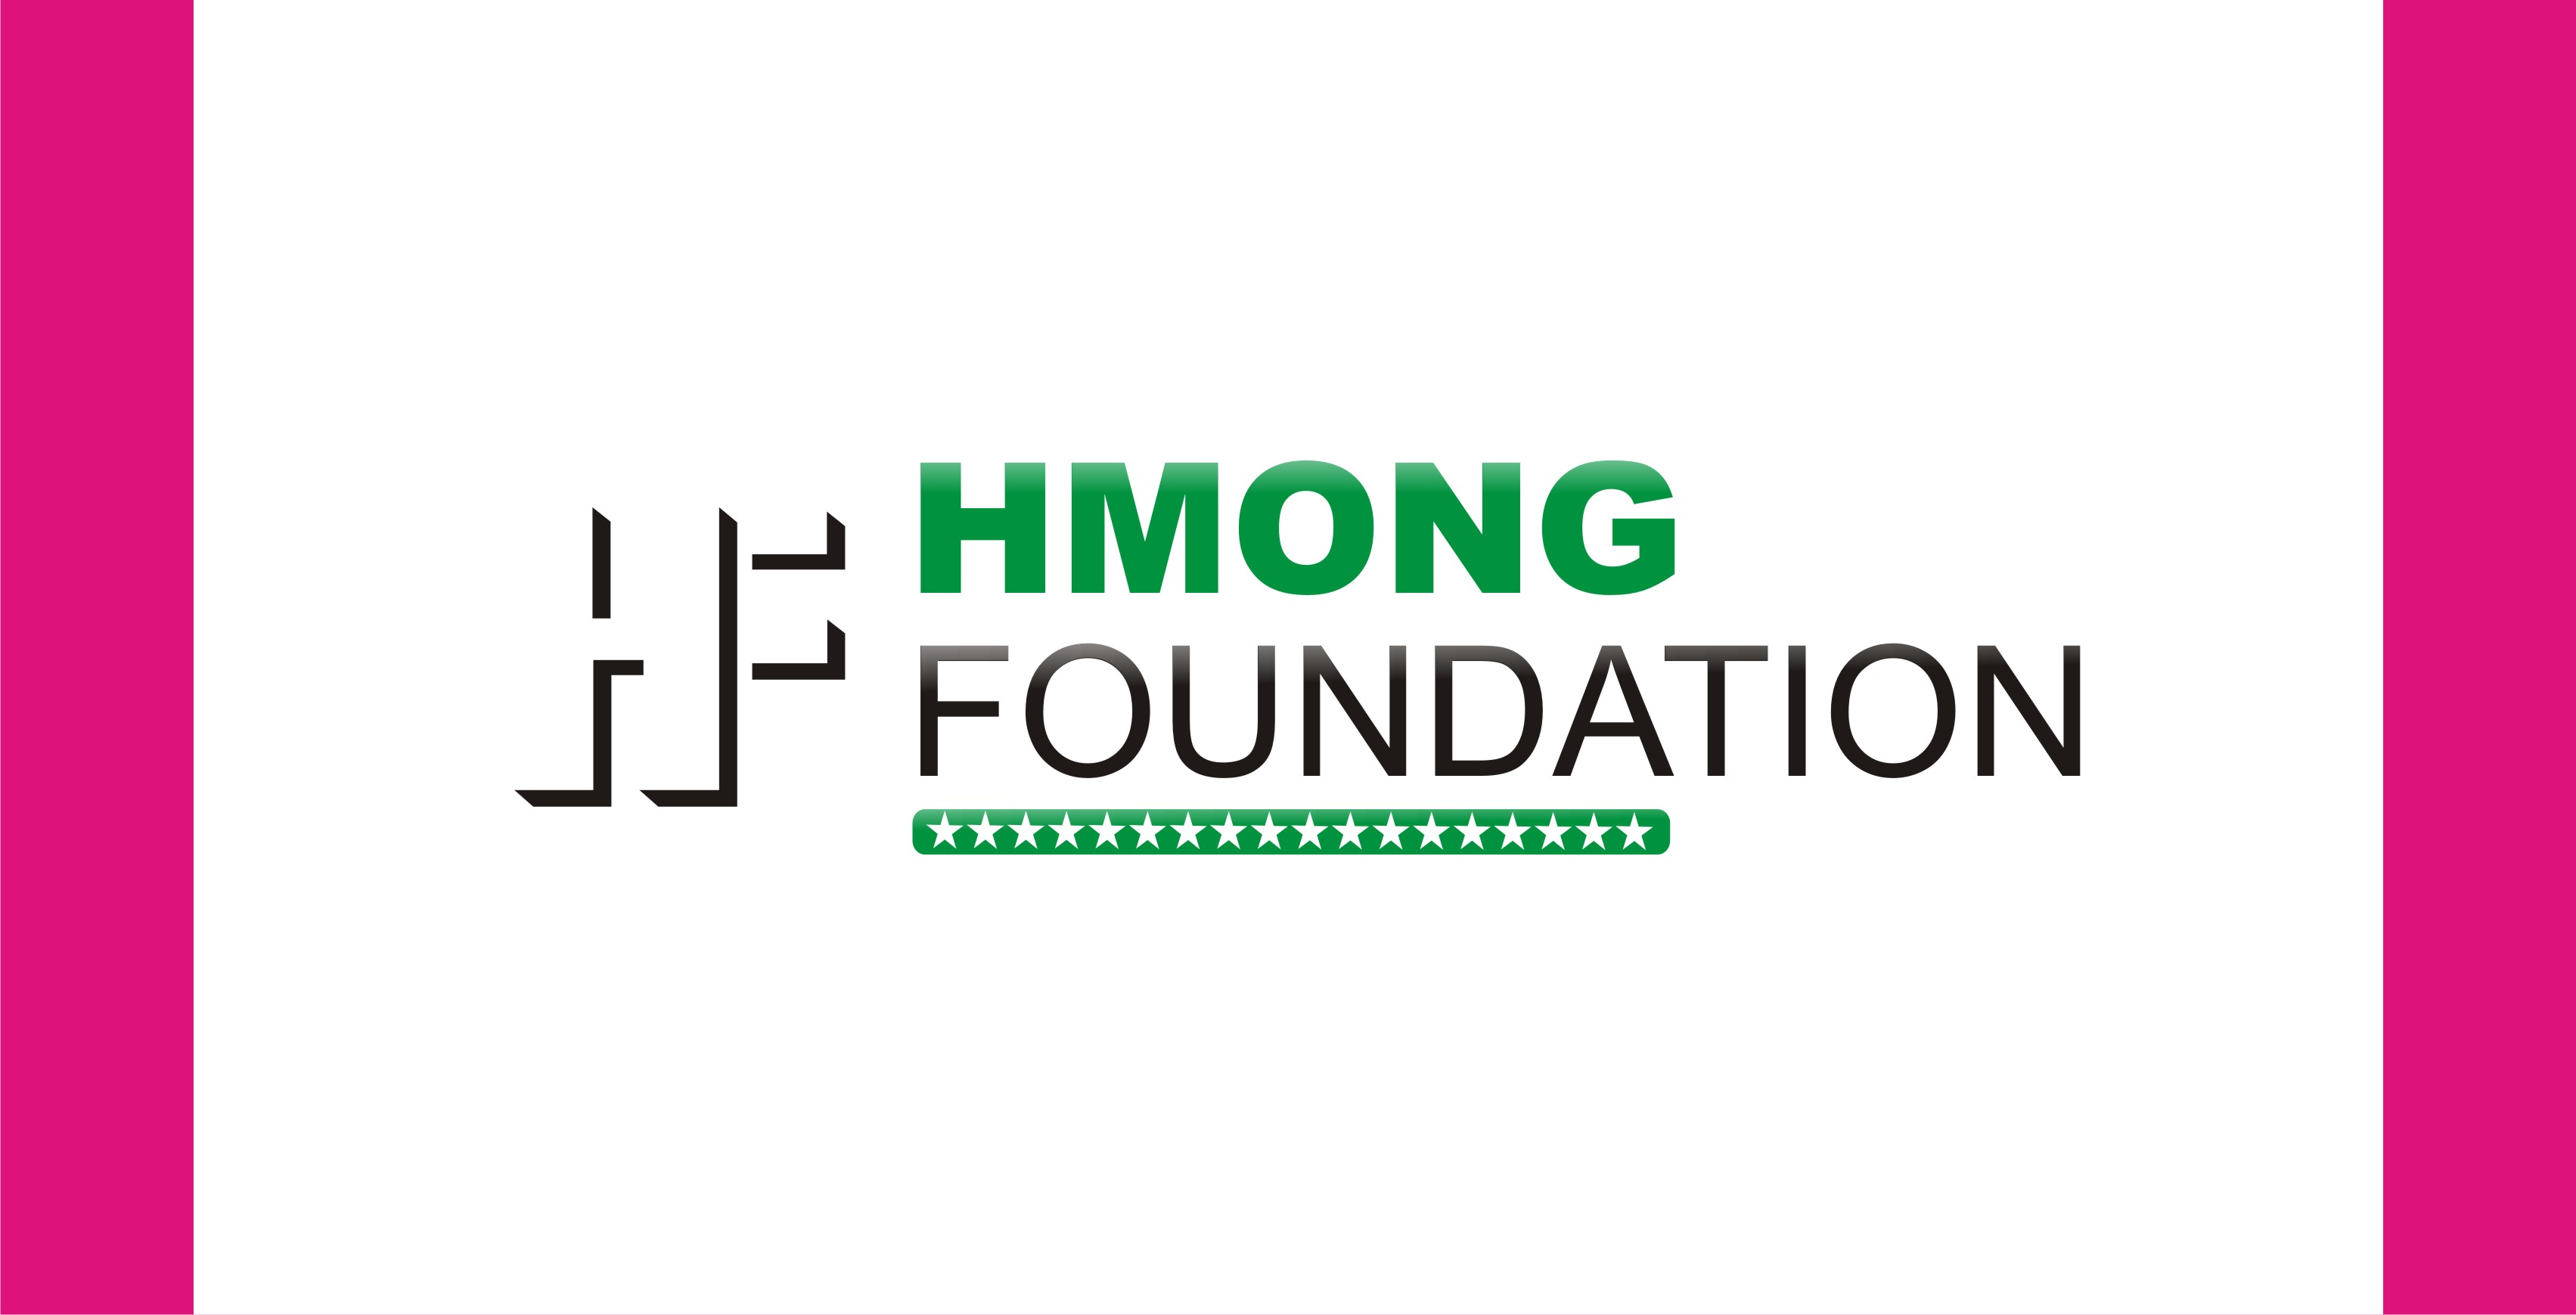 Logo Design by Shailender Kumar - Entry No. 78 in the Logo Design Contest Fun Logo Design for Hmong Foundation.